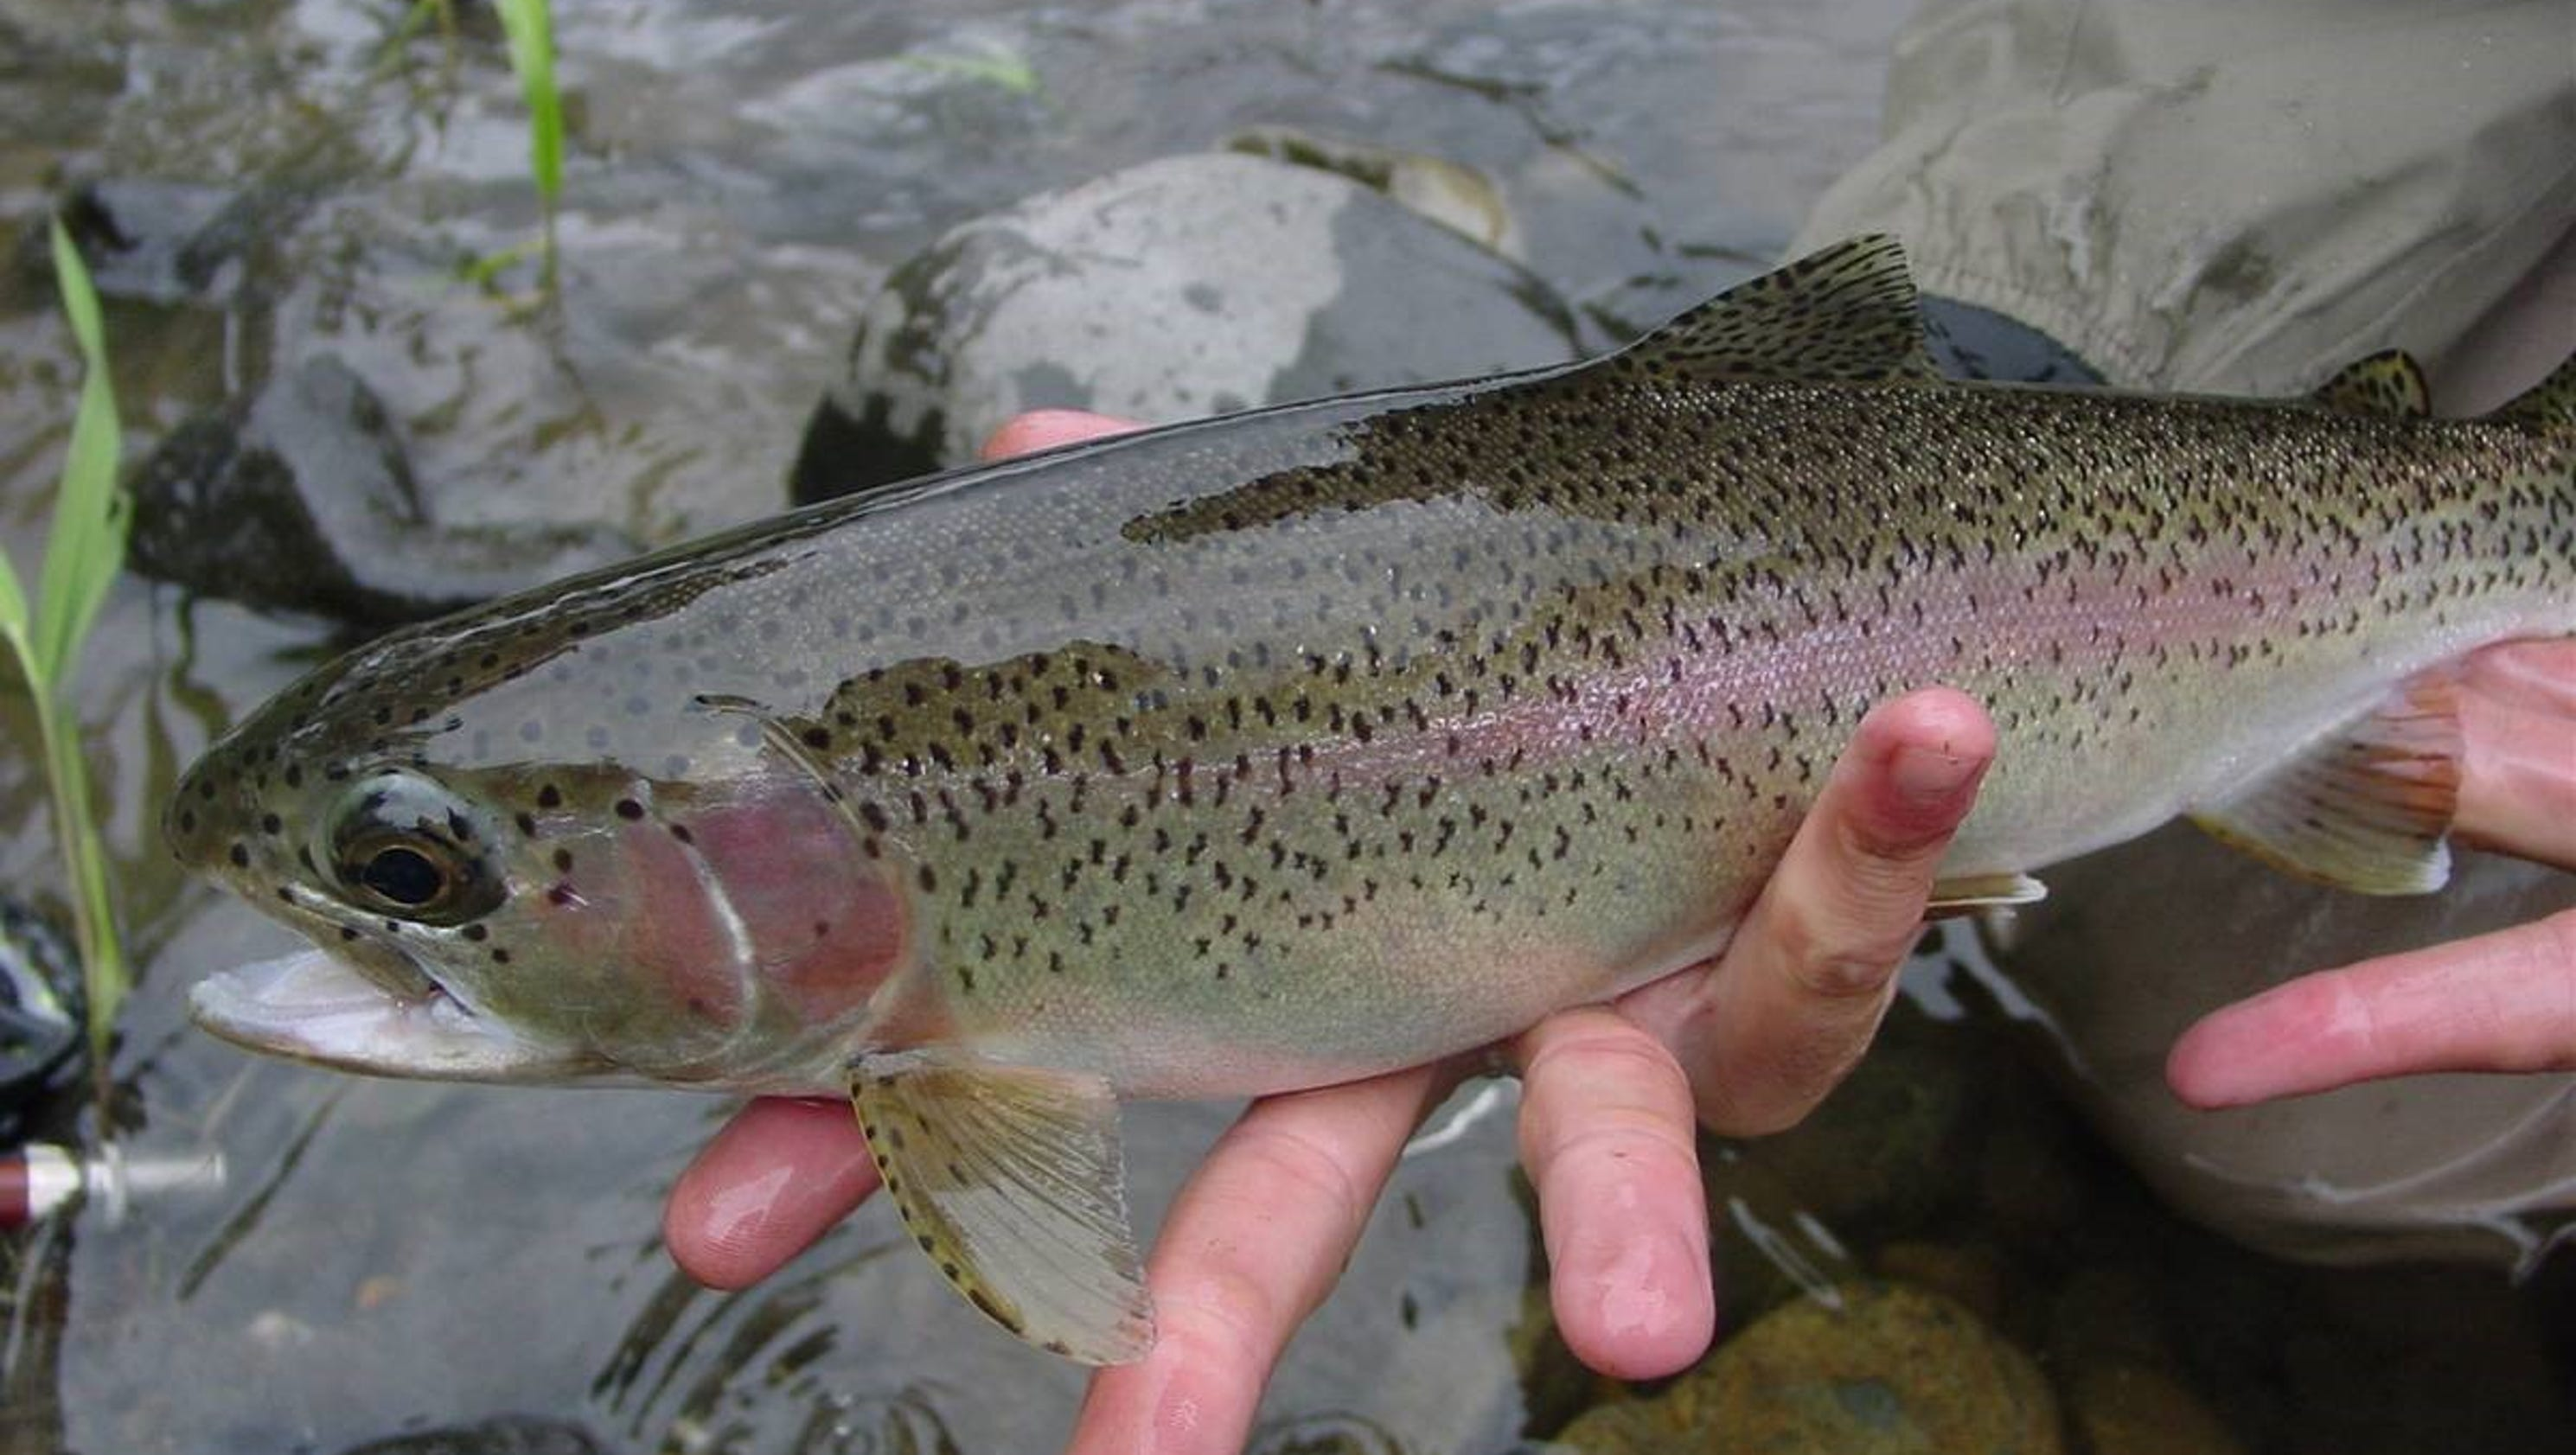 Lower raritan river stocked with rainbow trout fingerlings for Trout fishing nj